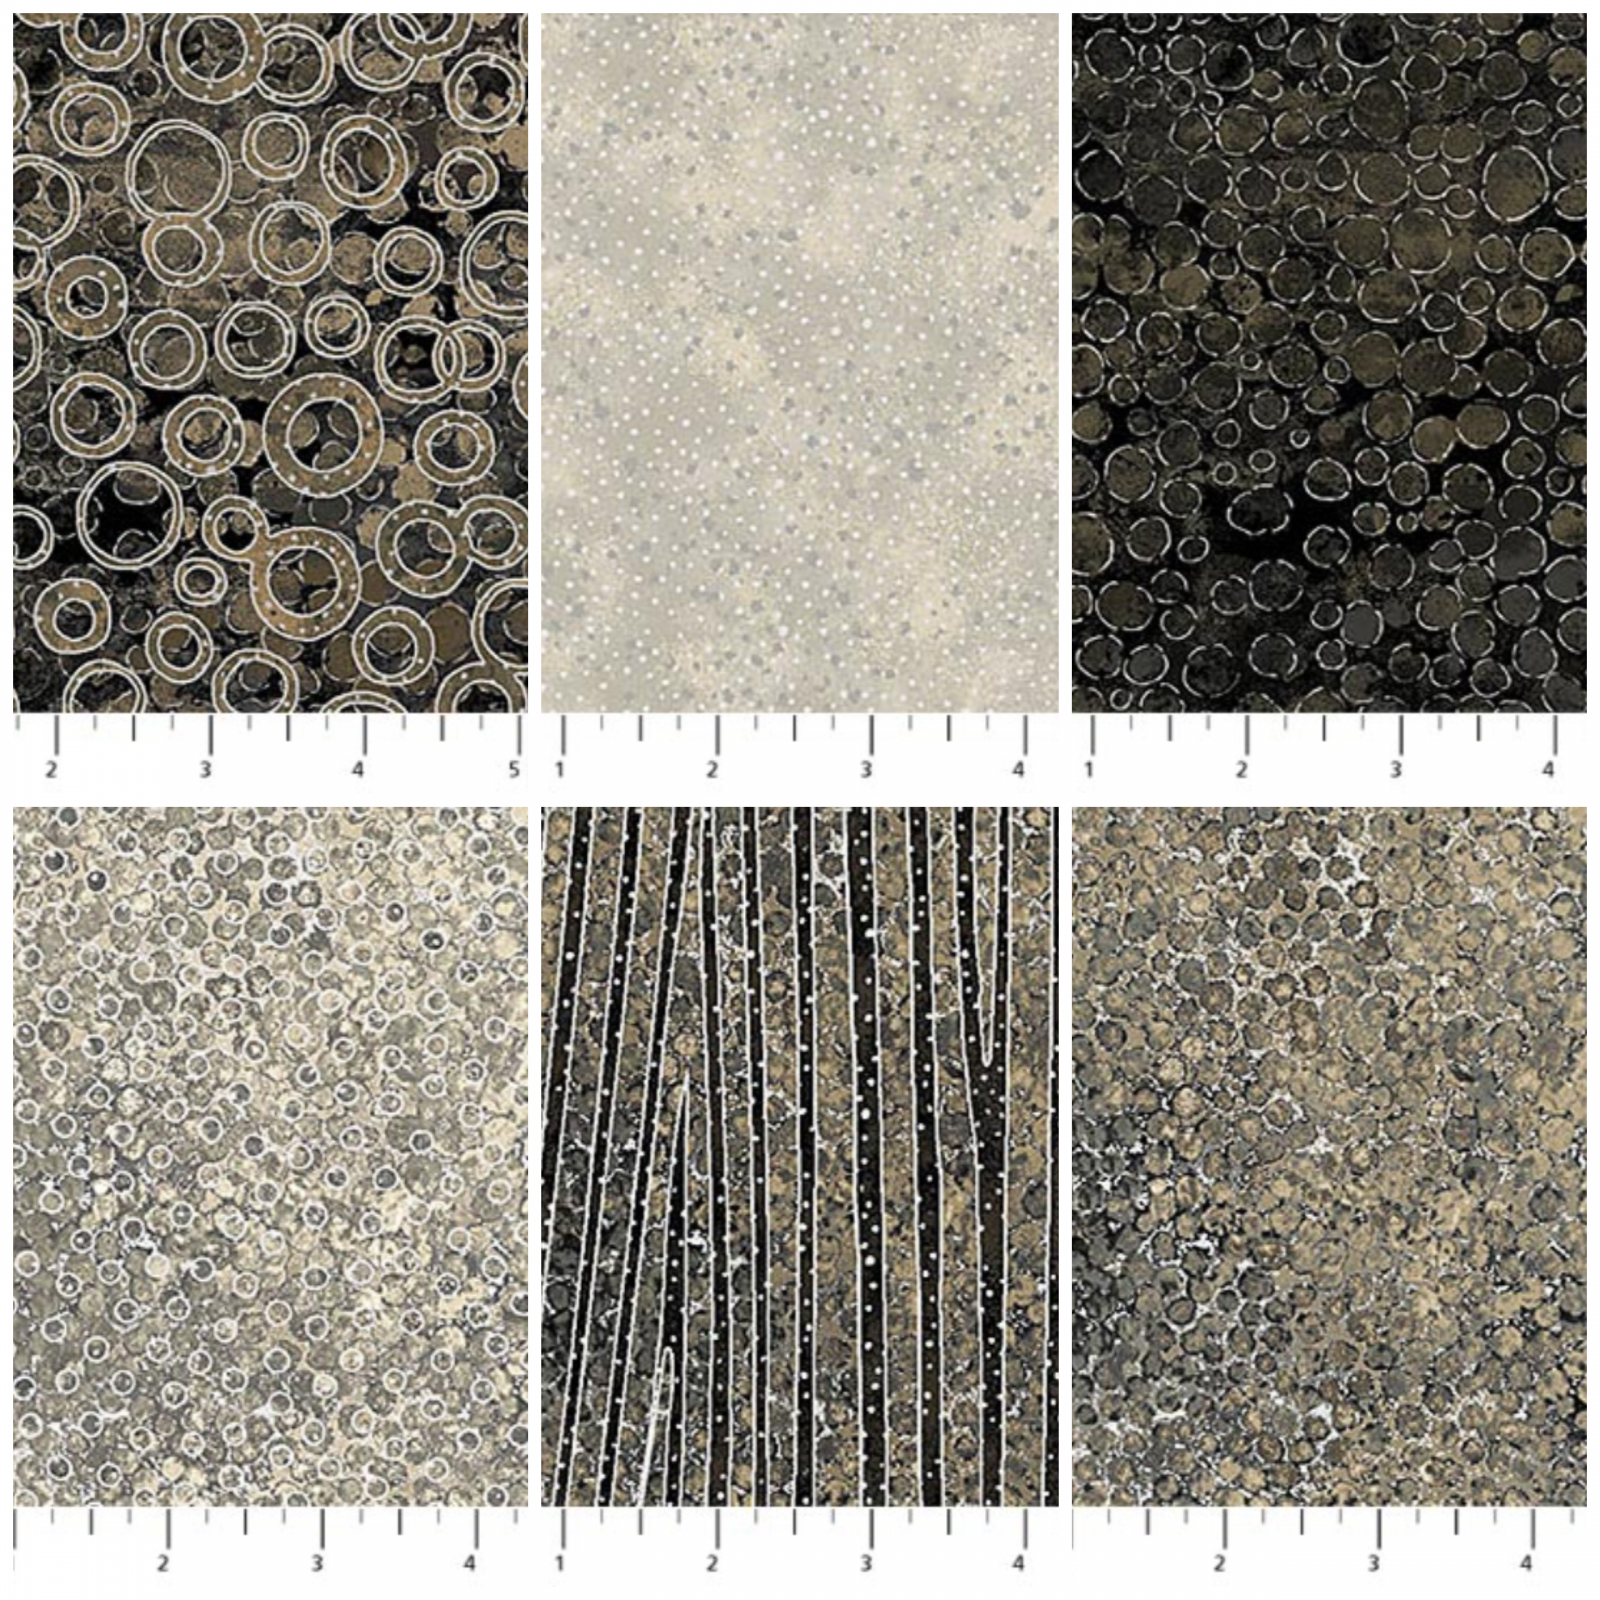 New Shimmer, Black Earth Fat Quarter Bundle, by Deborah Edwards for Northcott - Includes 6 Fat Quarters